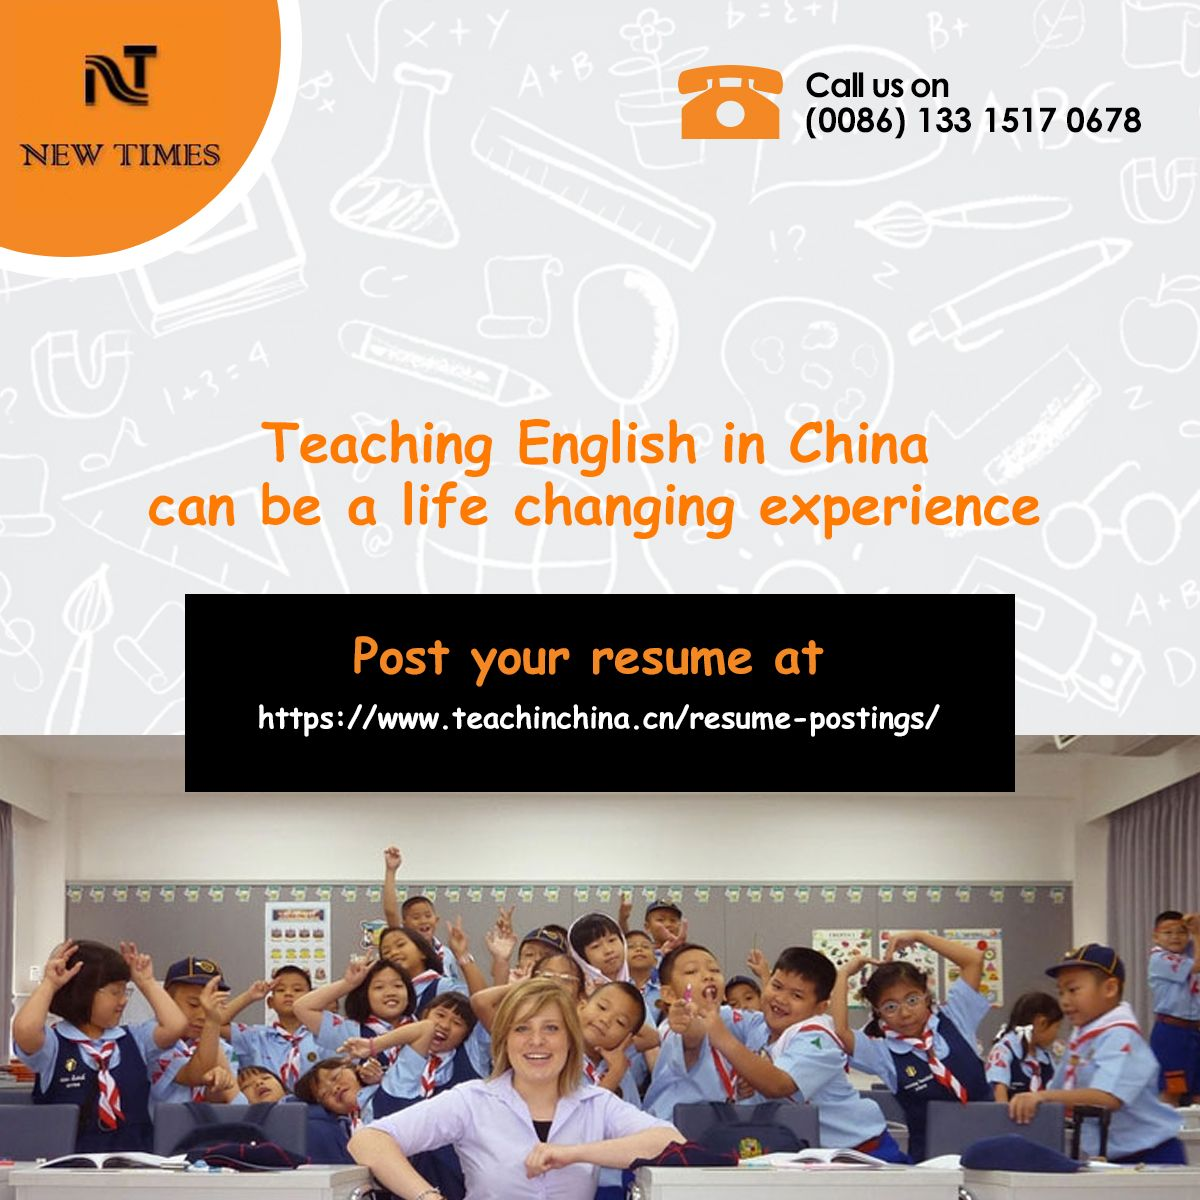 Have you ever hankered to travel and teach English